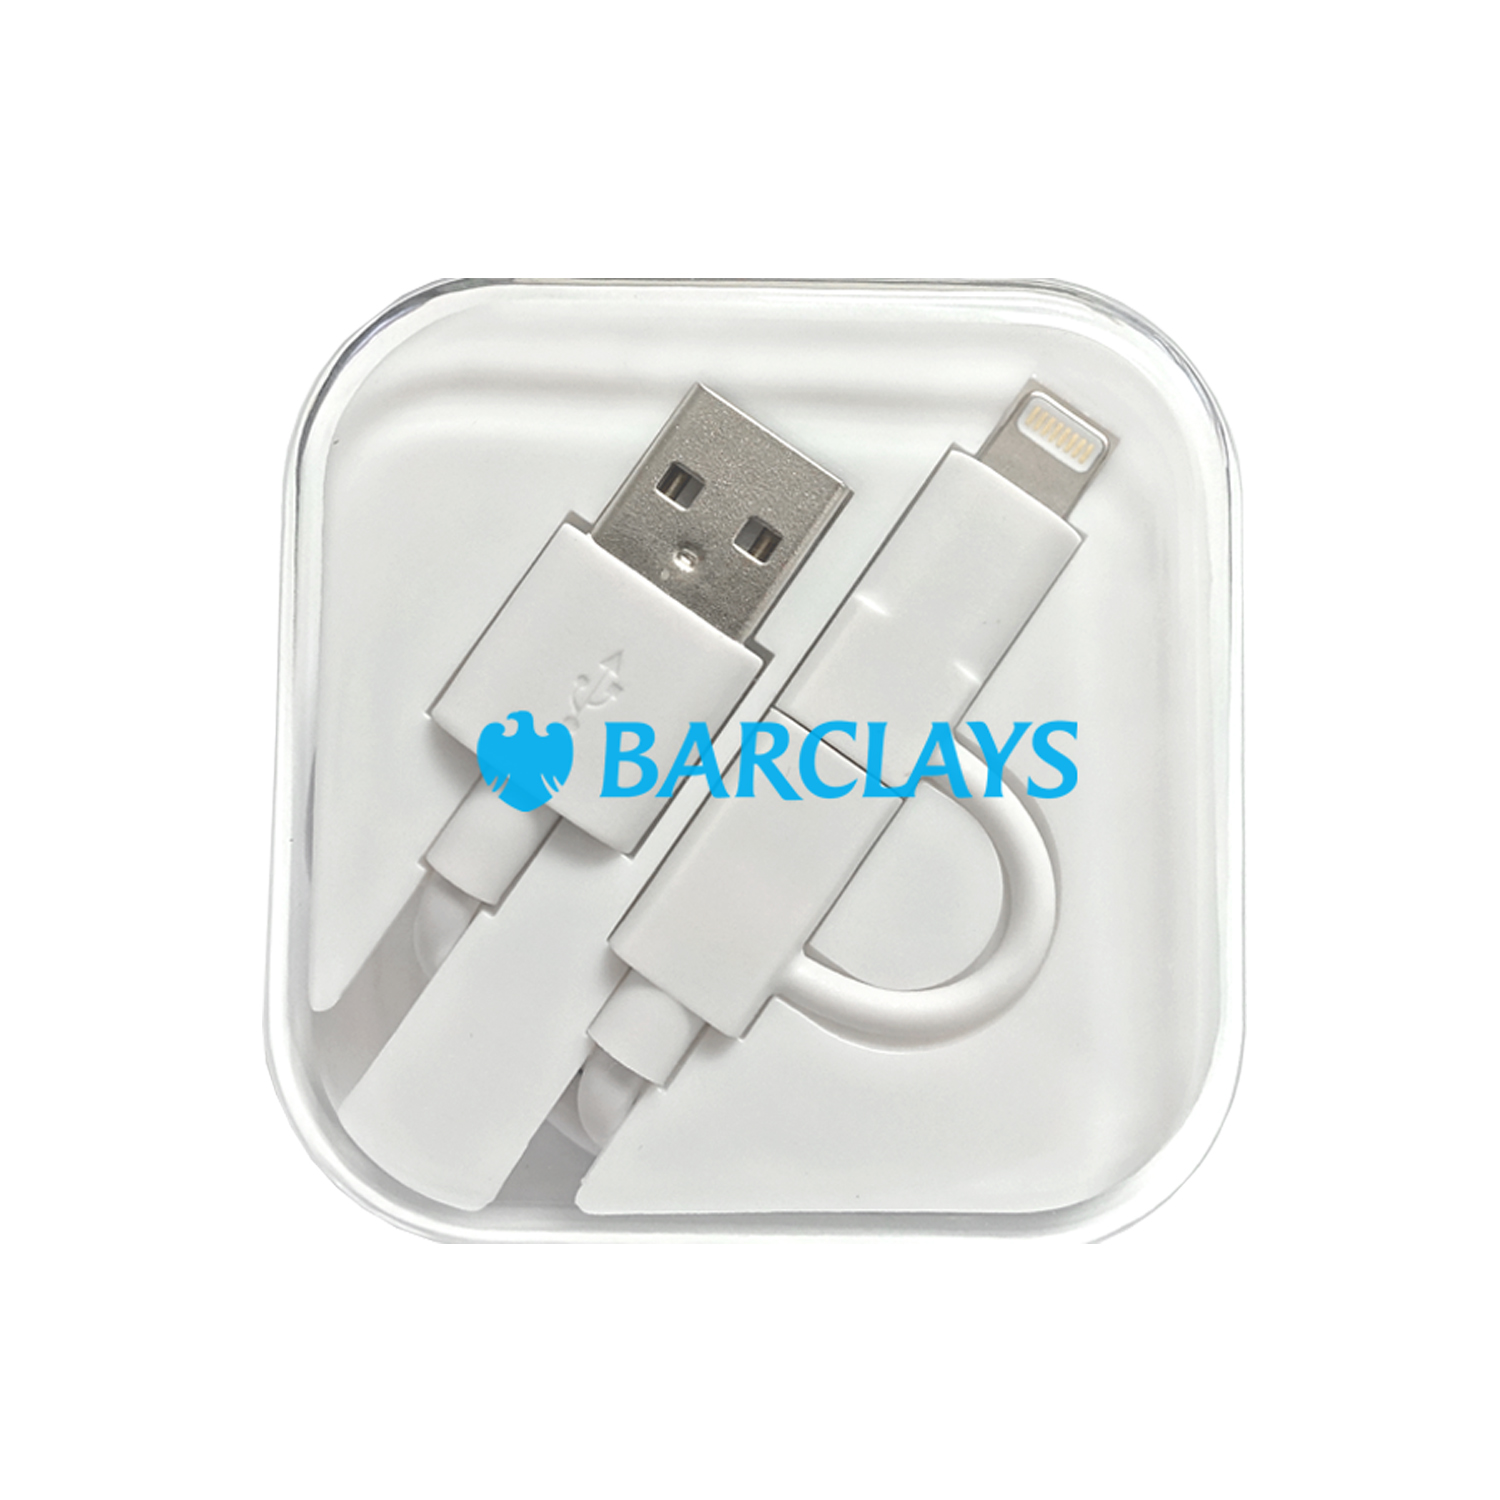 MFI Certified Lightning Tip + Micro USB Cable in Clear Case